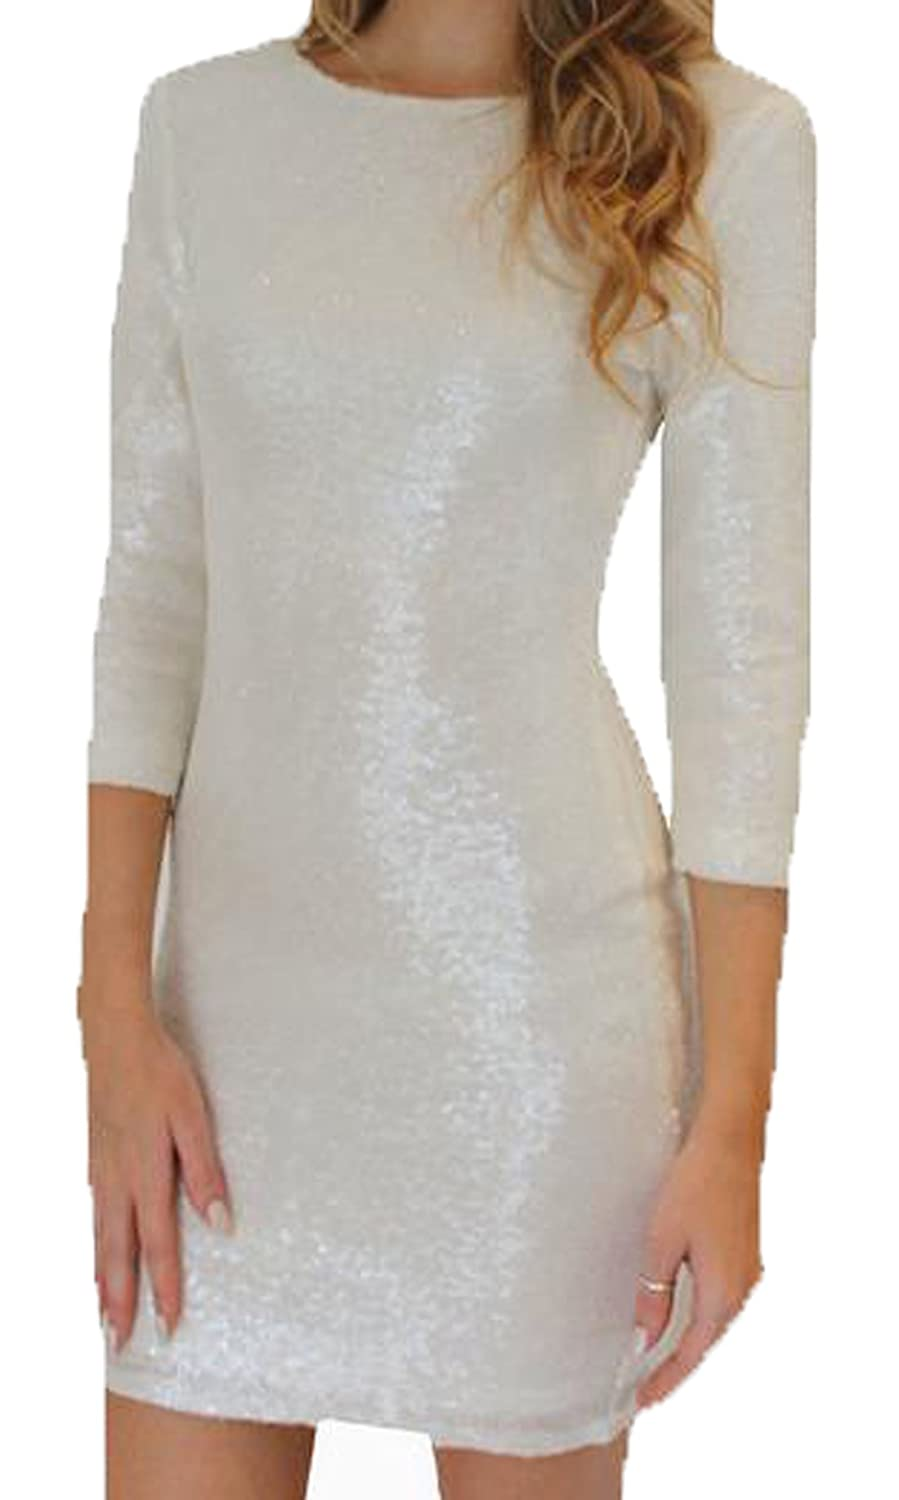 XTX Women Sequin Solid See Through Sexy Party Dress 2XL white